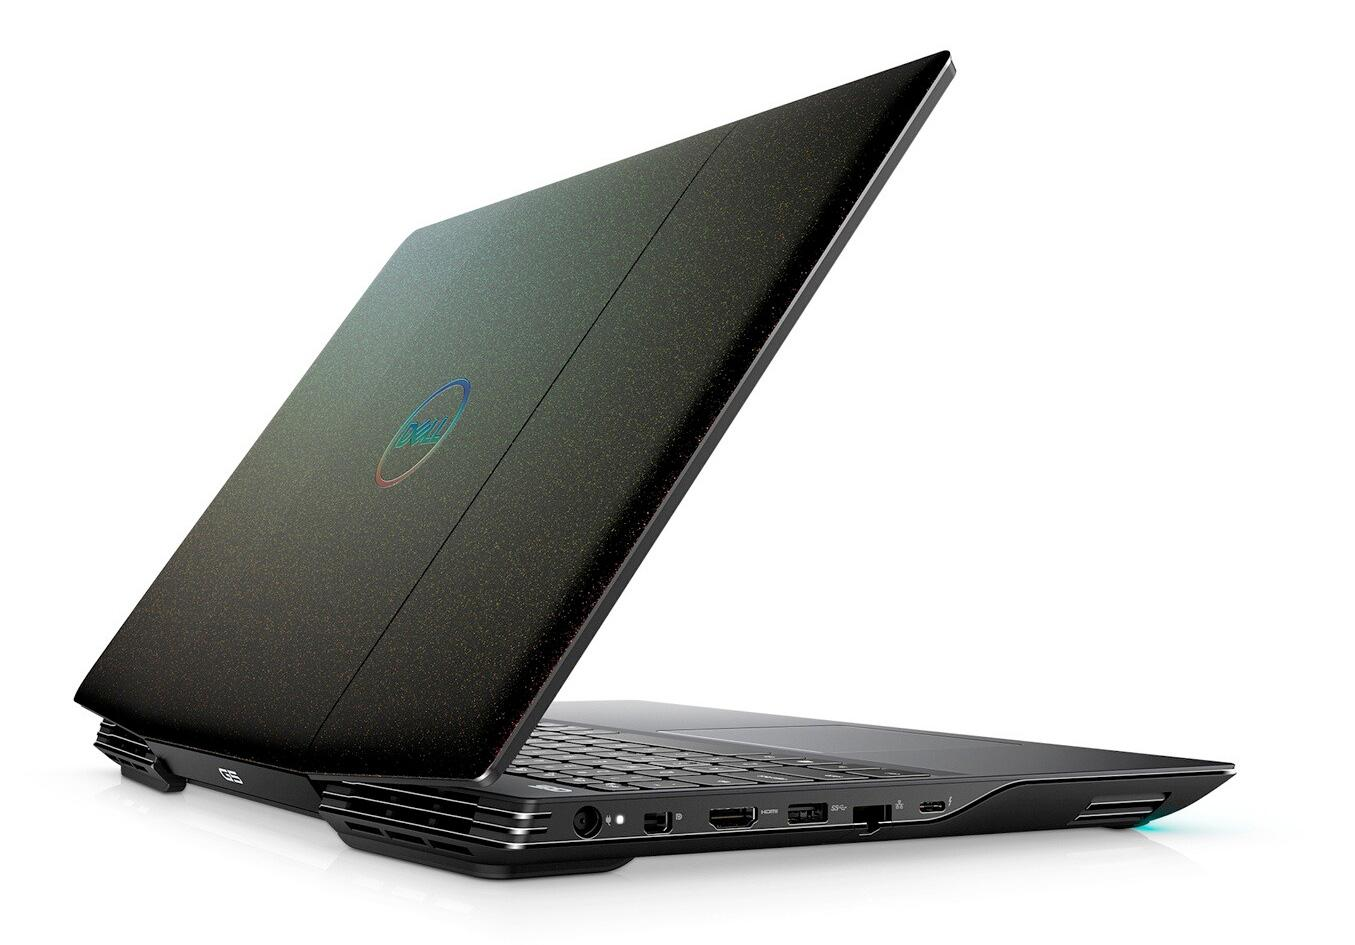 Image du PC portable Dell Inspiron G5 15 5500-252 Noir - RTX 2060, IPS 300Hz, SSD 1 To, TB3